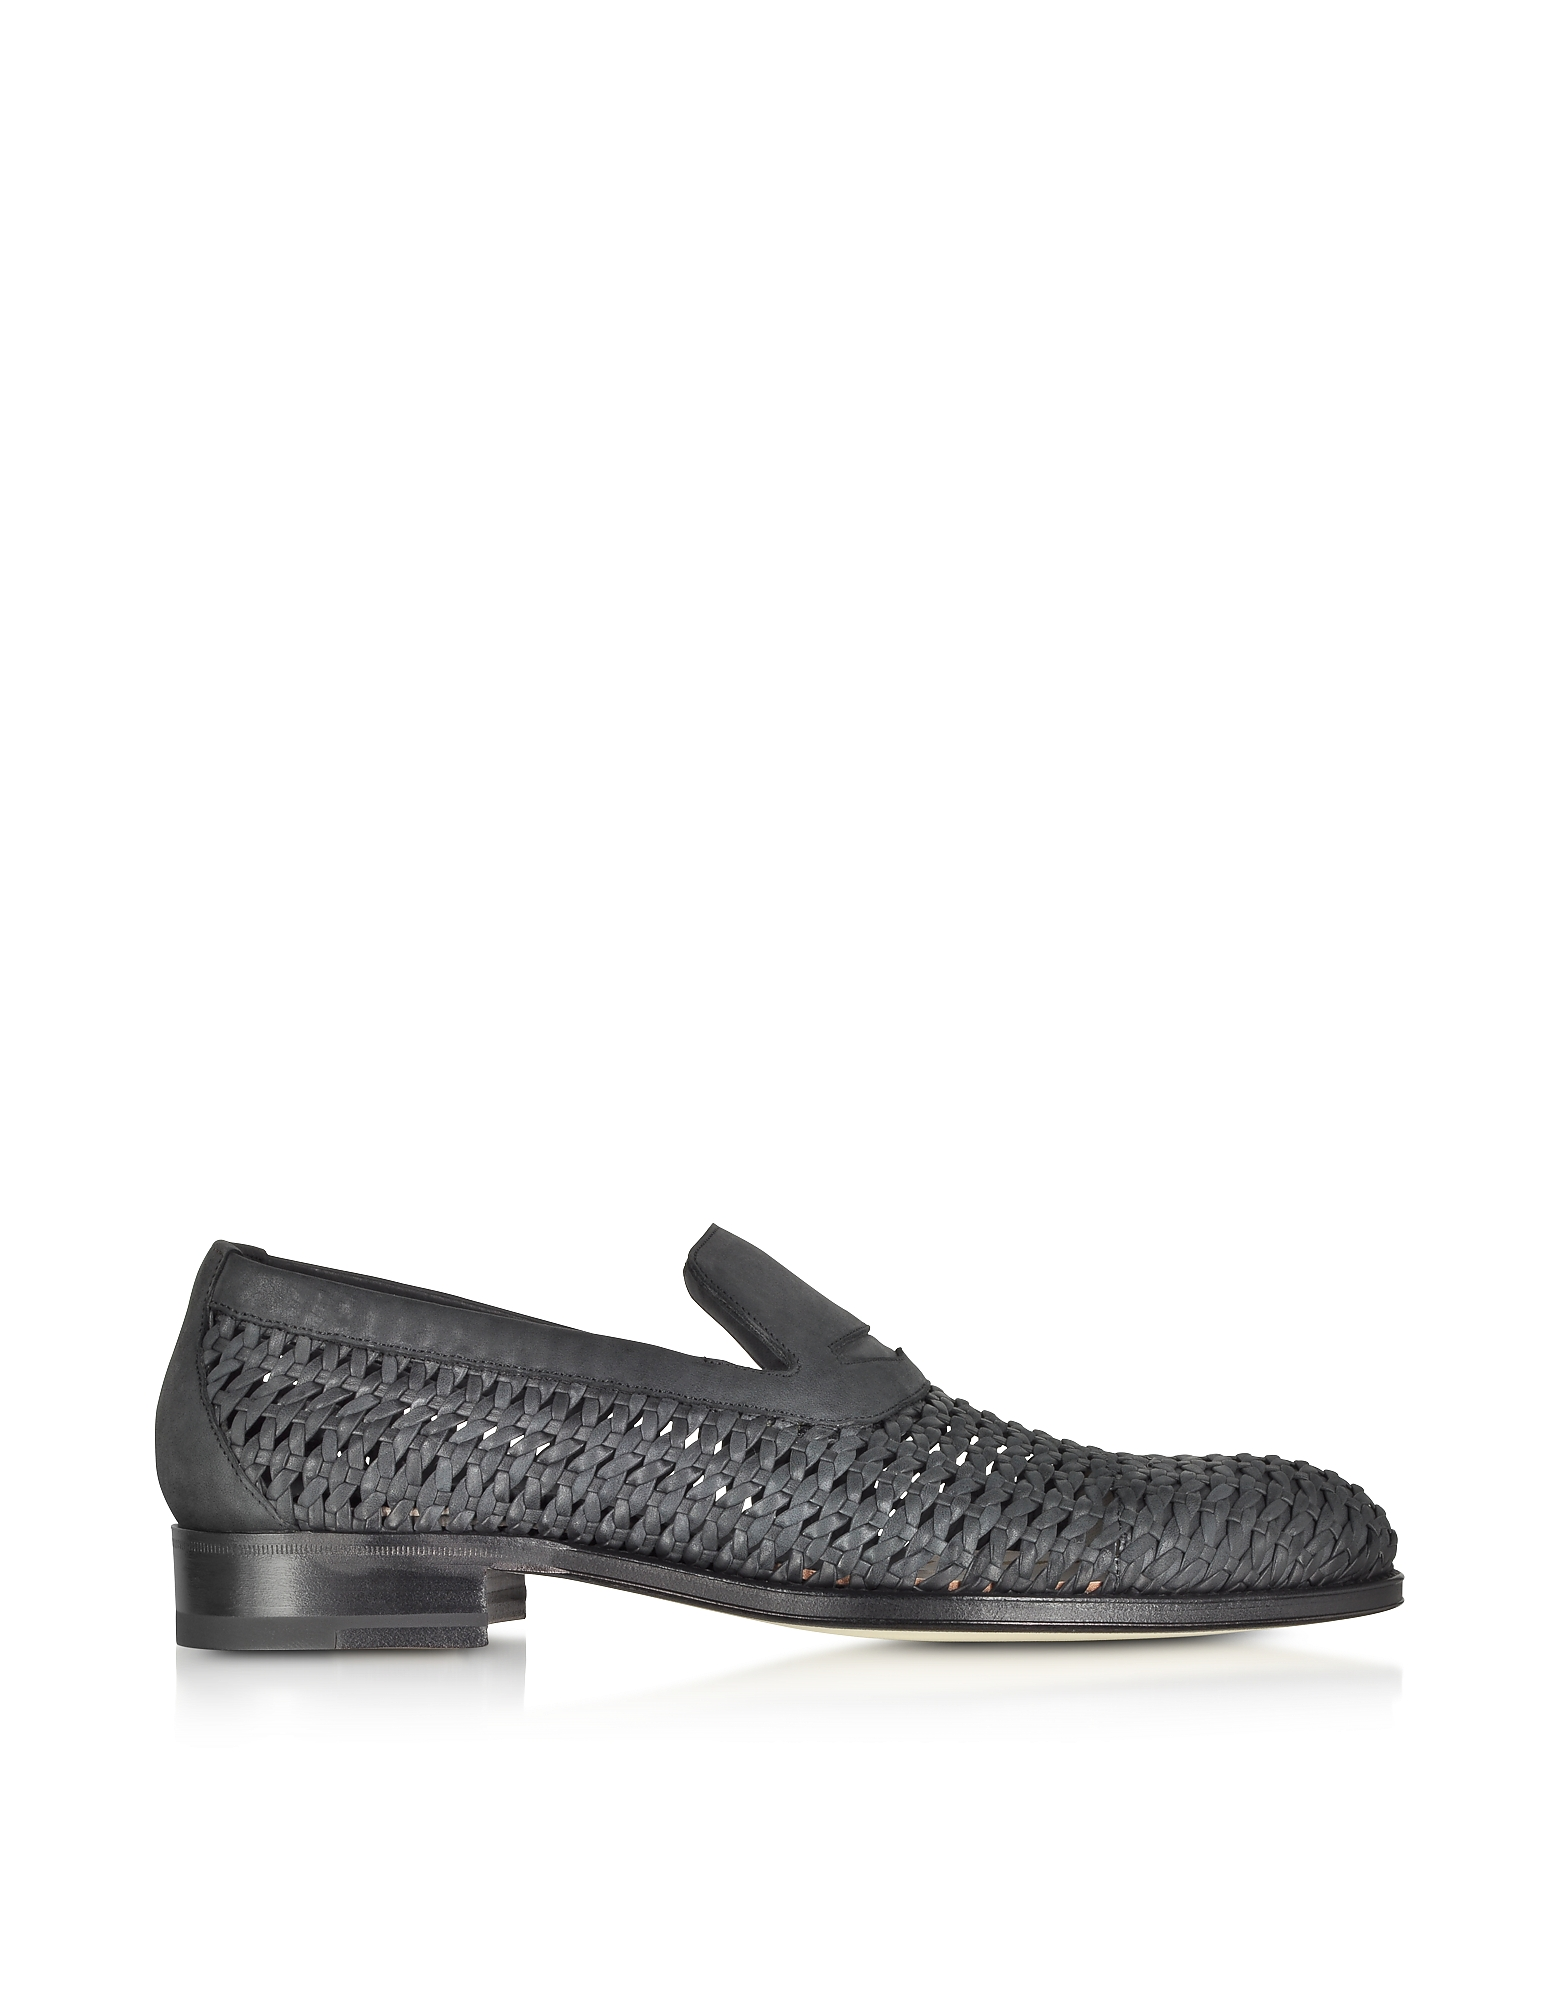 A.Testoni Shoes, Black Woven Leather Slip-on Shoe